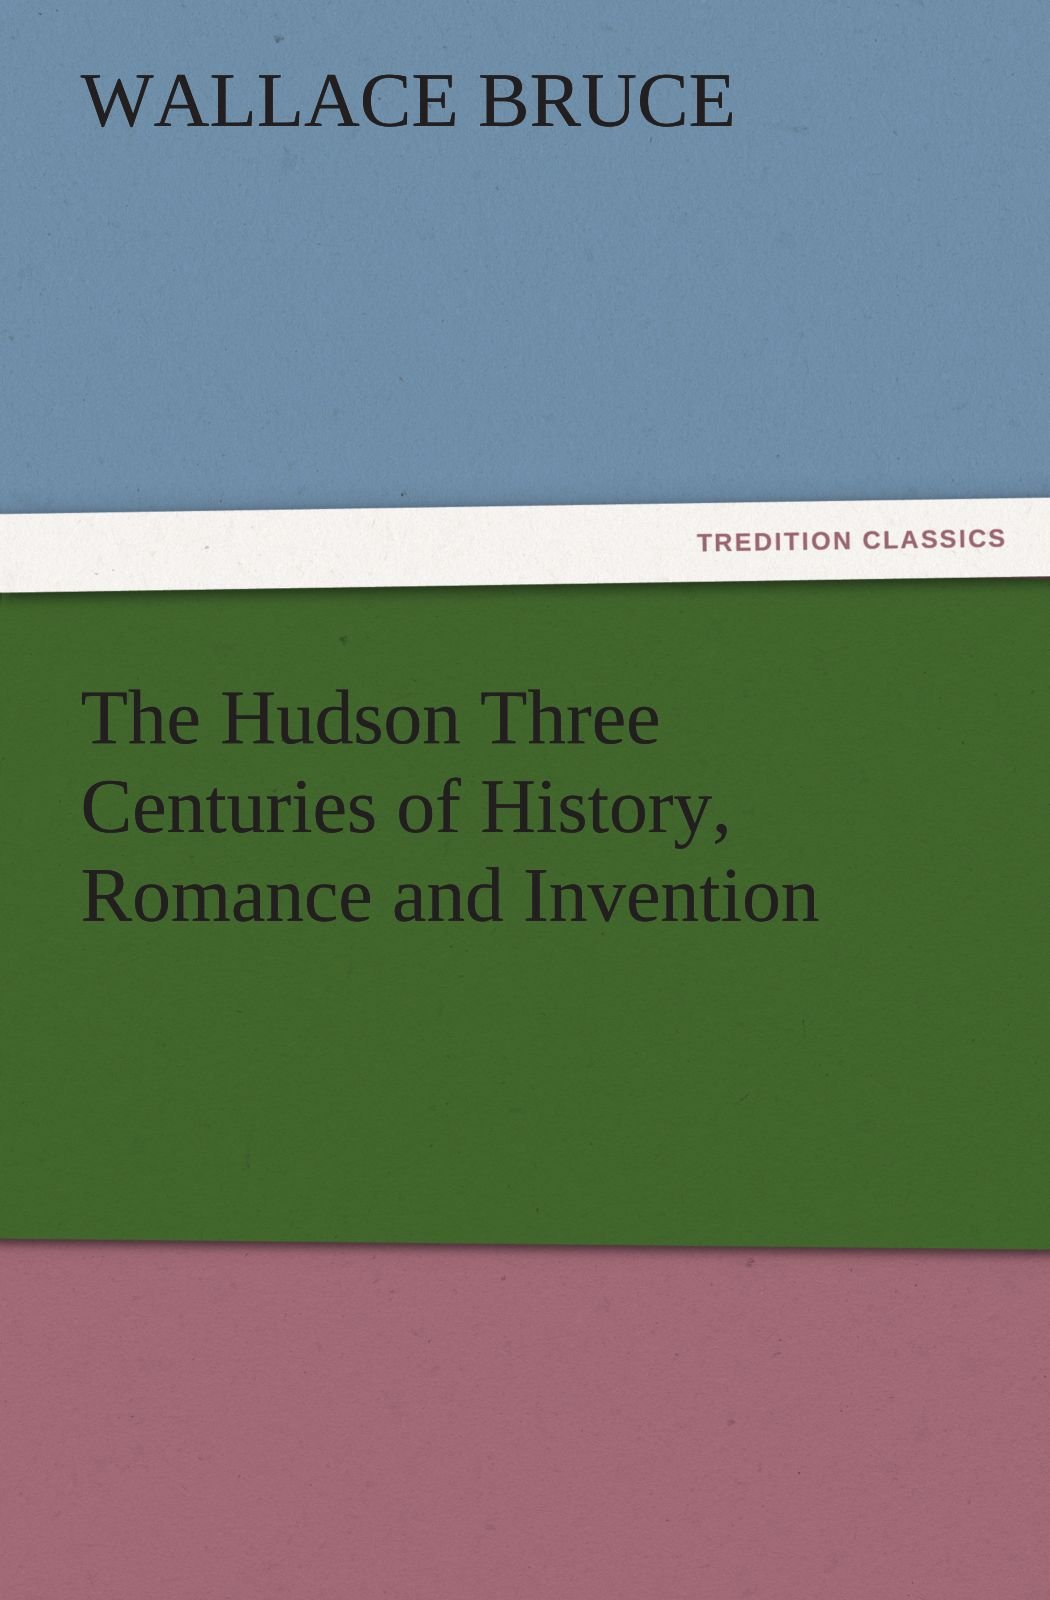 The Hudson Three Centuries of History, Romance and Invention (TREDITION CLASSICS) pdf